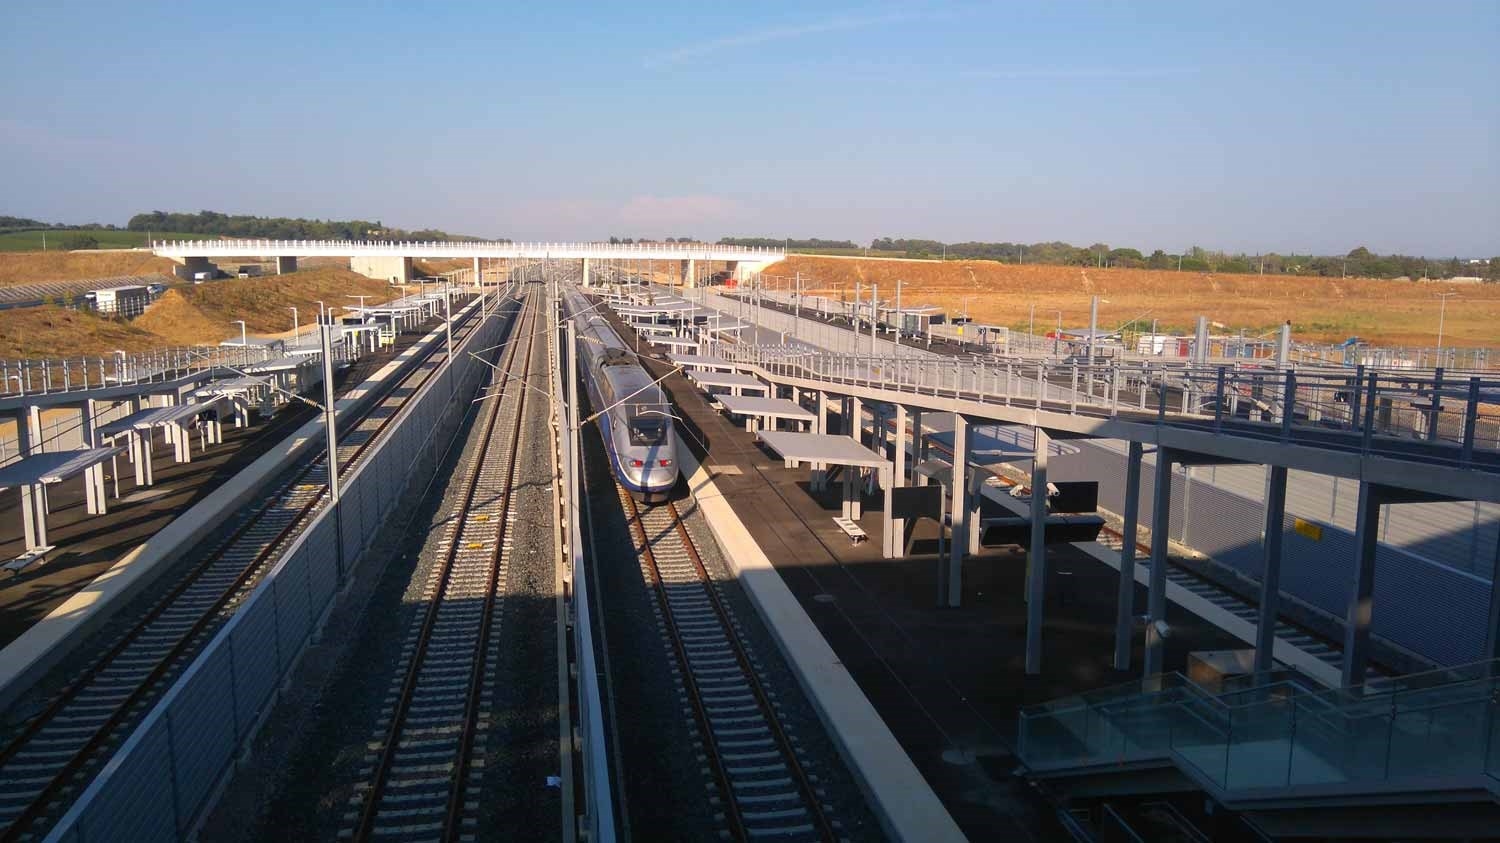 LGV CNM High Speed Railway, France